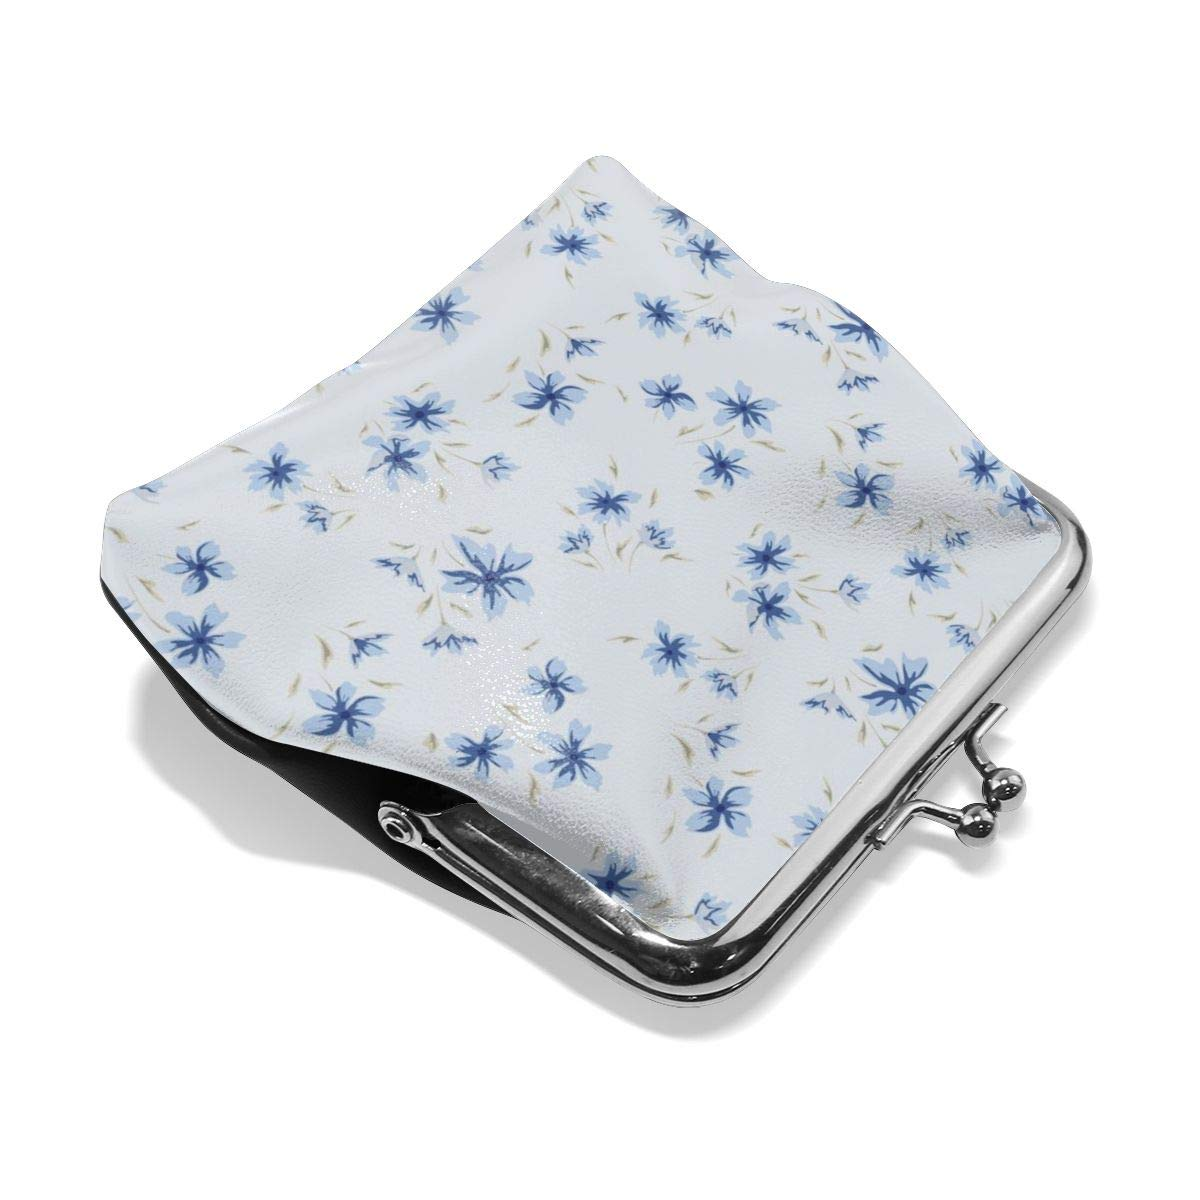 Poream Blue Small Floral Seamless Illustration Personalized Retro Leather Cute Classic Coin Purse Clutch Pouch Wallet For Womens